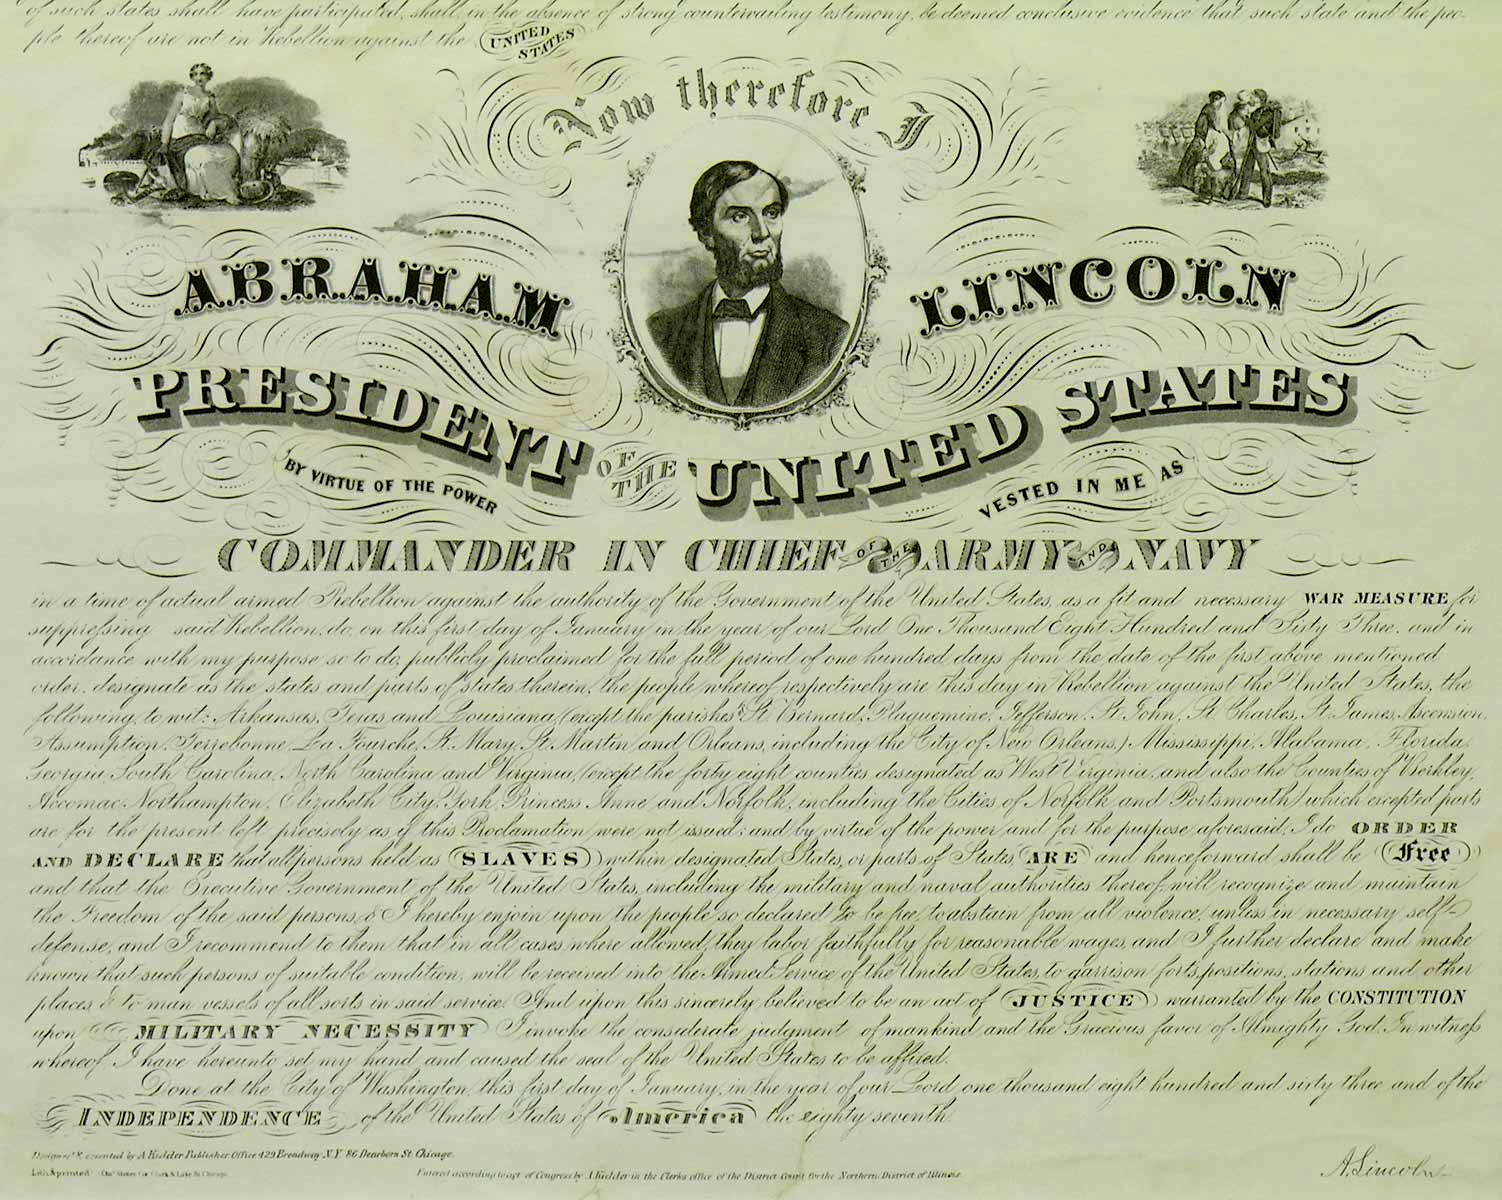 president lincoln and the emancipation proclamation essay Emancipation: american civil war and emancipation proclamation essay emancipation analysis the emancipation proclamation was an executive order issued by president abraham lincoln on january 1, 1863, as a war measure during the american civil war, to all segments of the executive branch (including the army and navy) of the united.